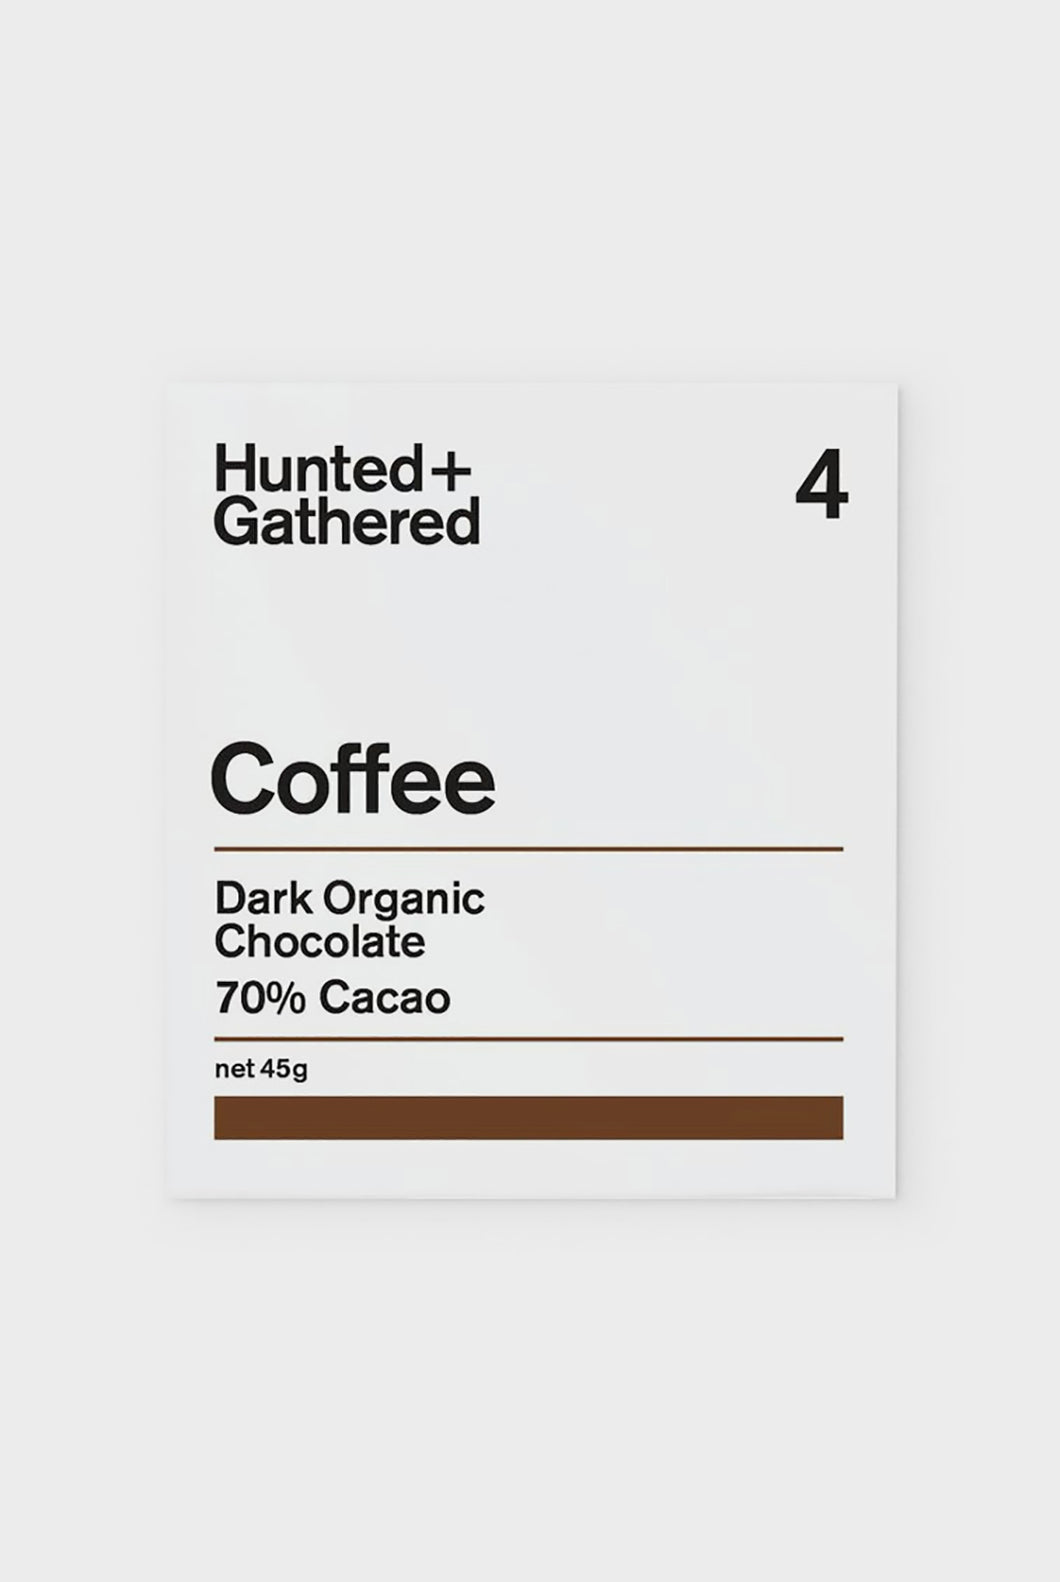 Hunted + Gathered - Coffee 70% Dark Chocolate